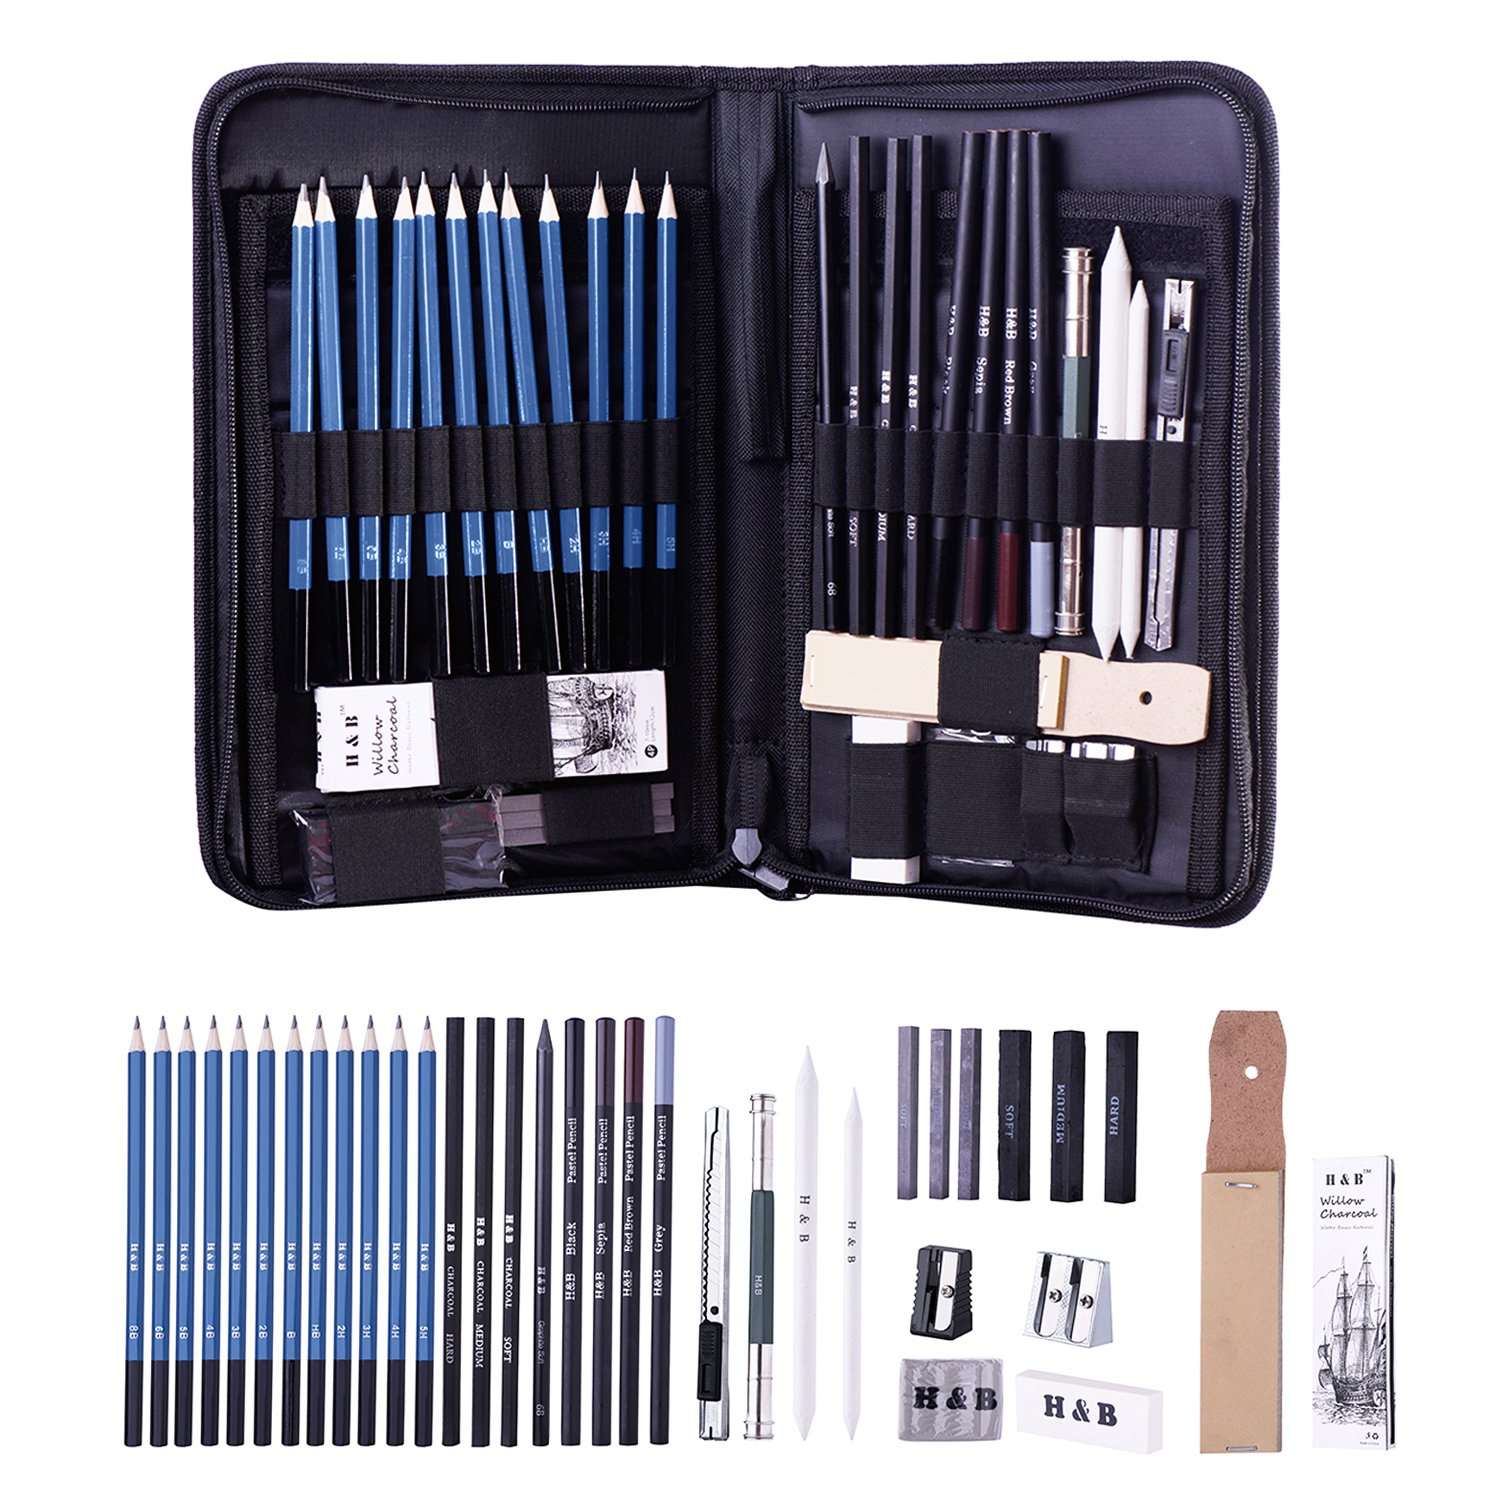 H b graphite drawing pencils and sketch set 40 piece set complete artist kit includes charcoals pastels and zippered carry case includes rare pop up